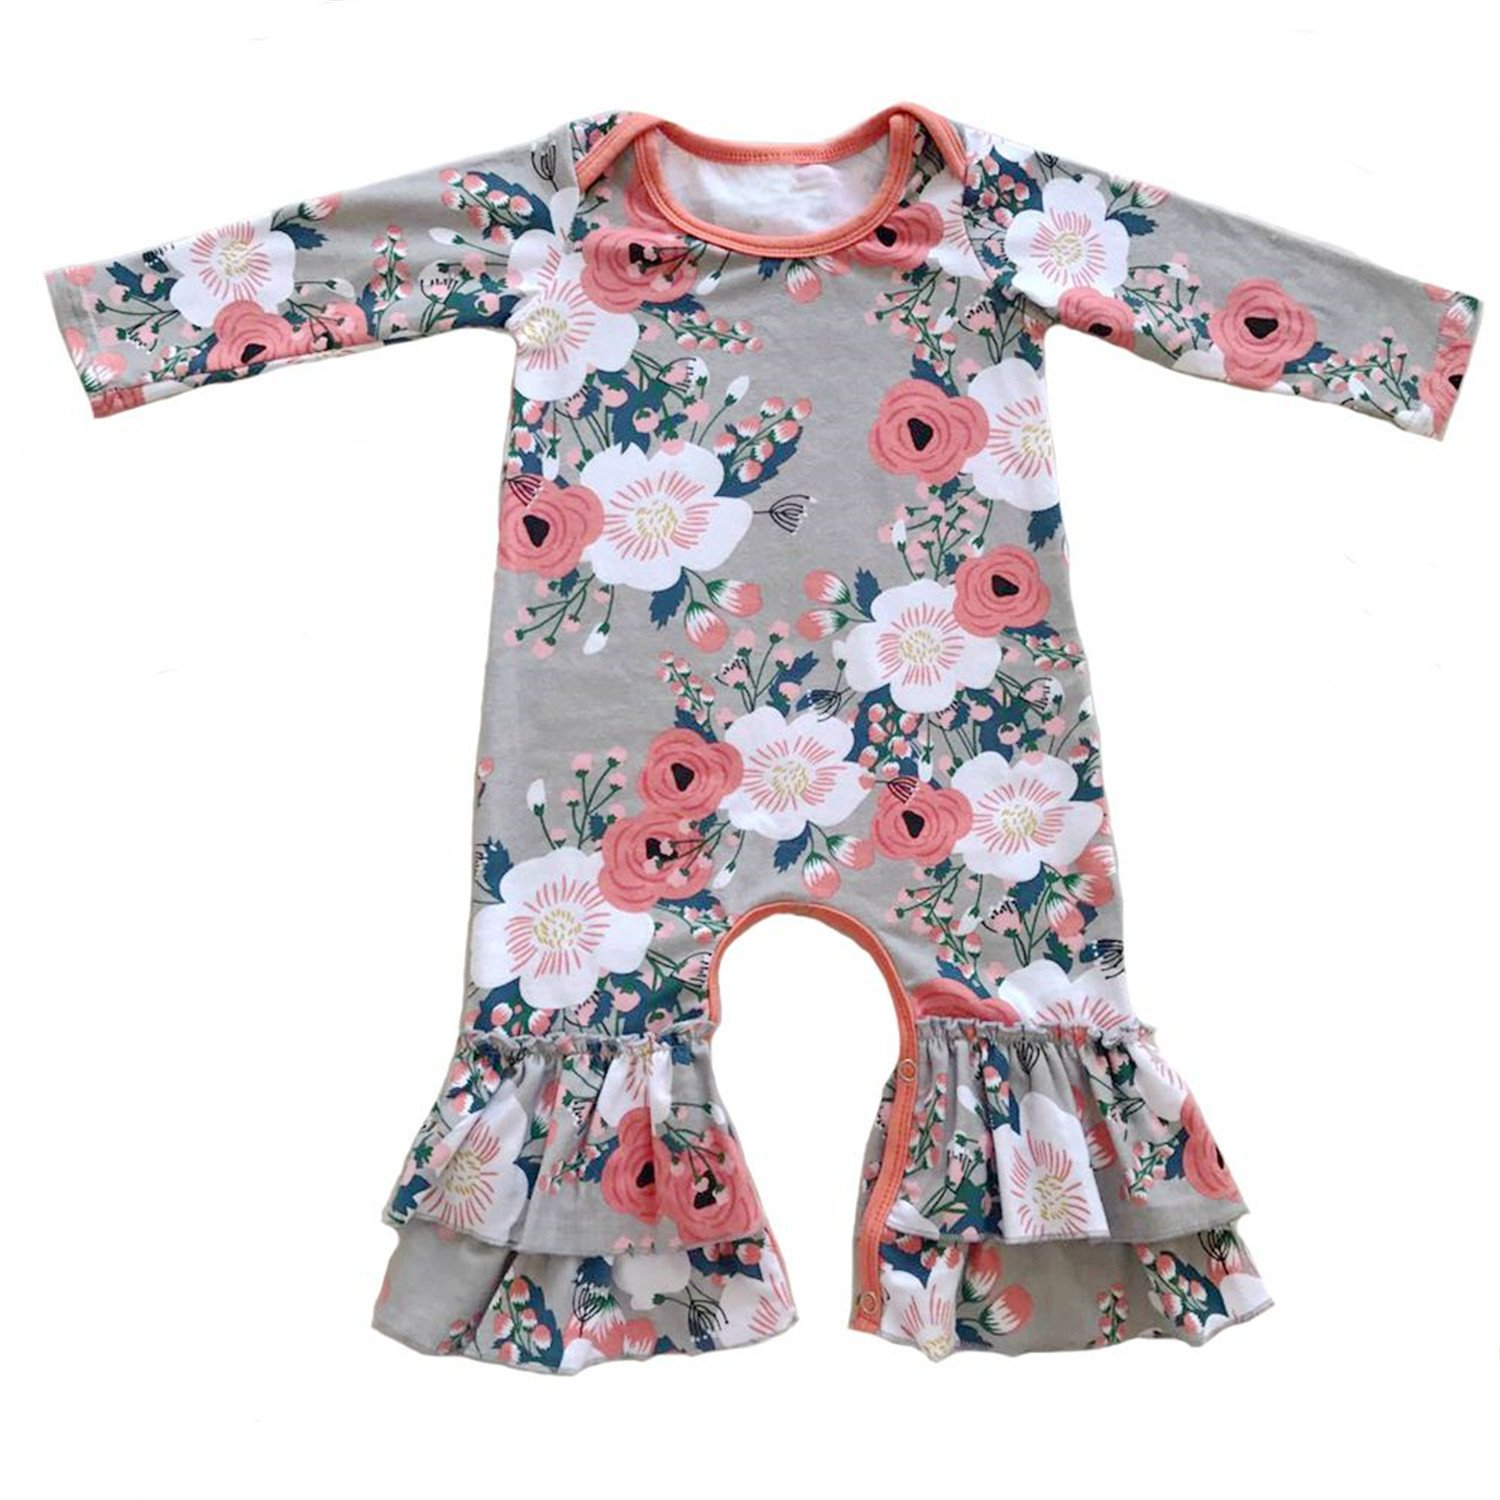 09aa6a469194 Amazon.com  Evan Fordd Baby Girls Ruffled Romper Baby Girls Thanksgiving  Leg Romper Ruffle Pants  Clothing